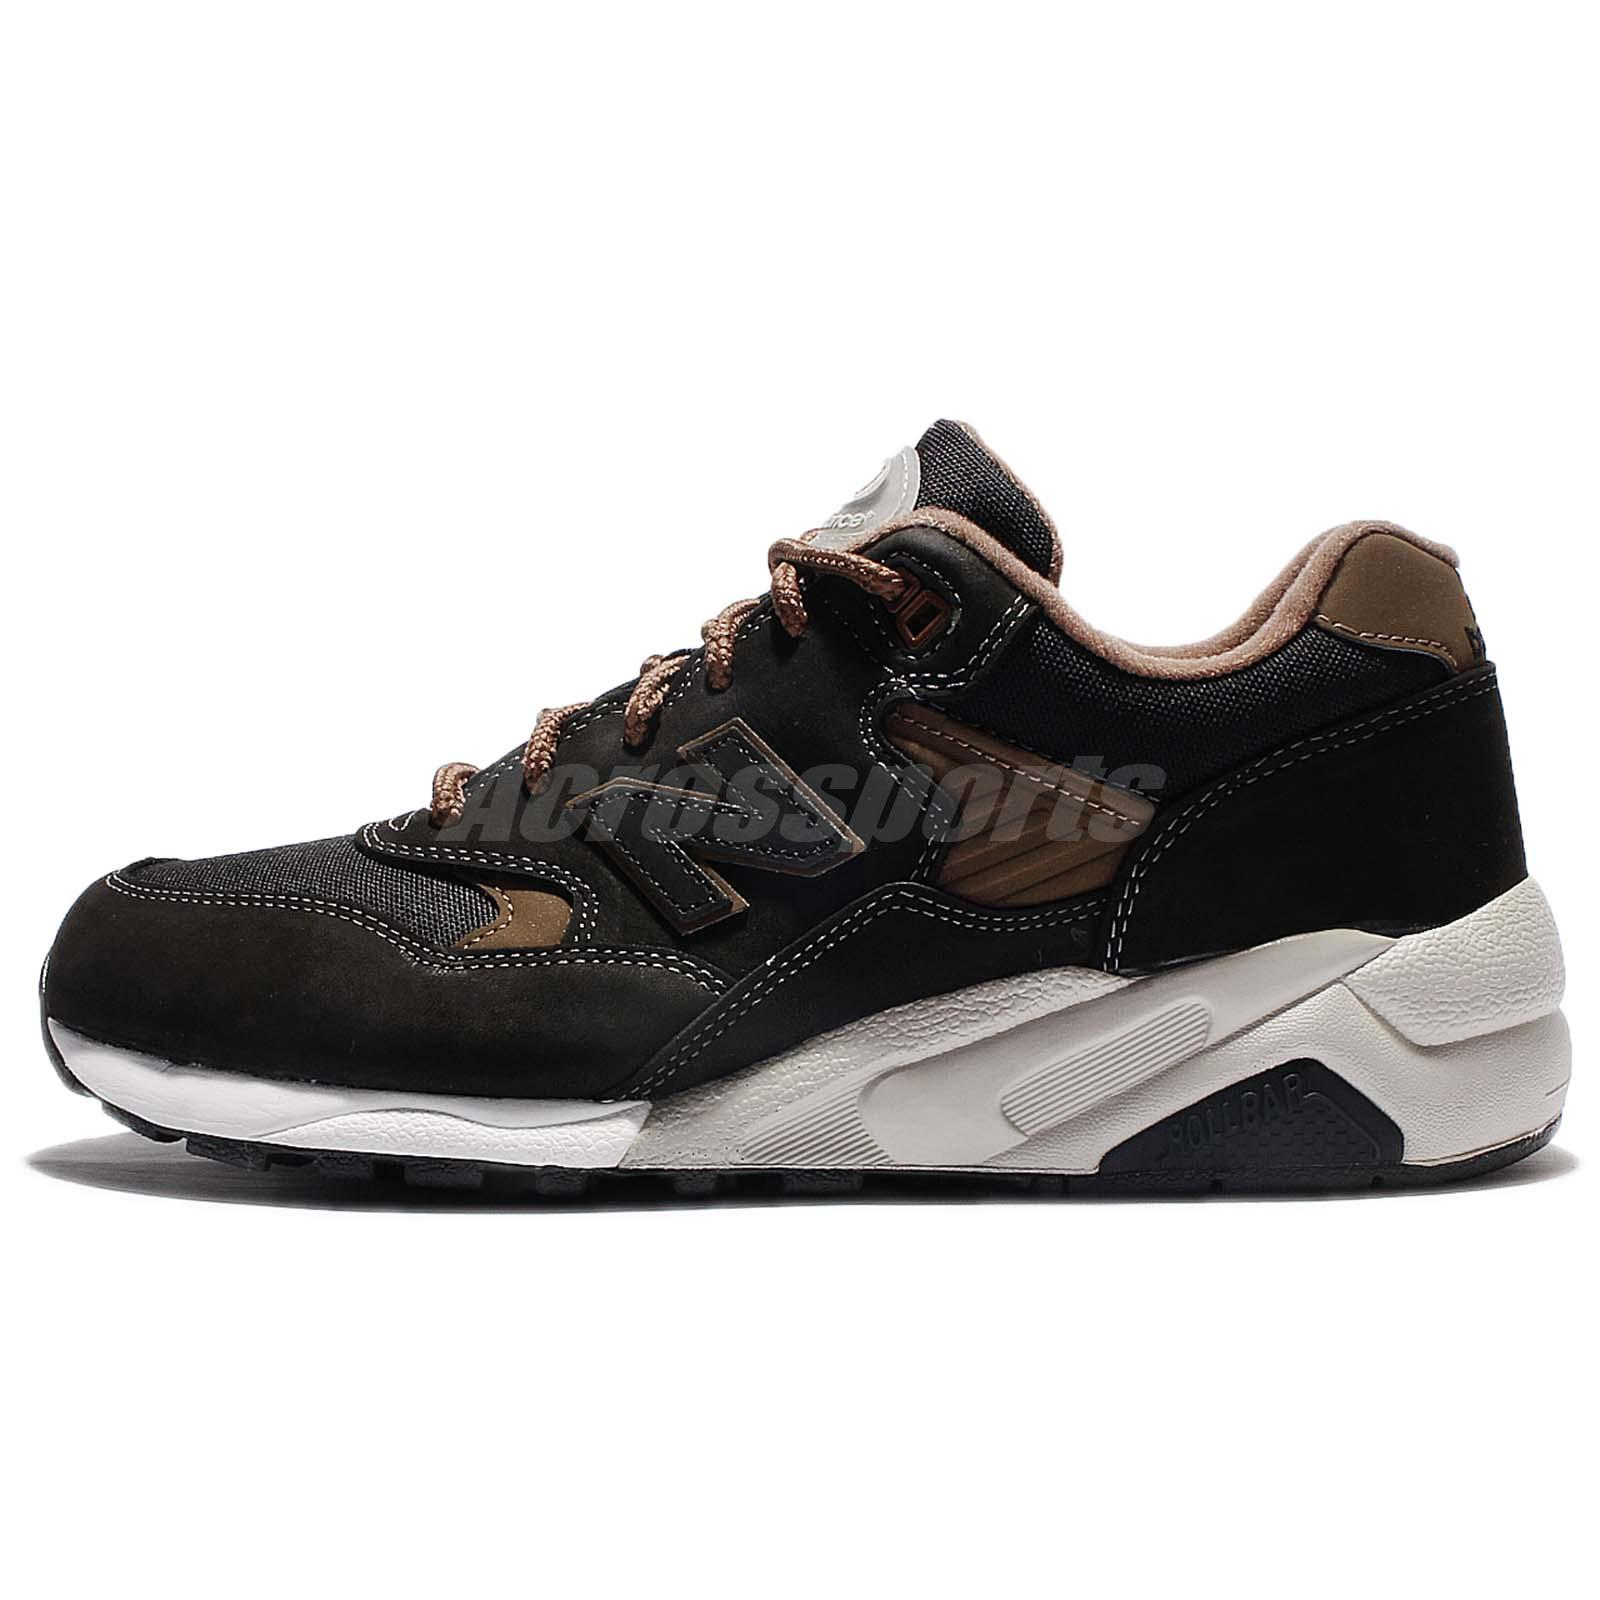 new balance ladies trainers. new balance mt580ob d black brown men running shoes sneakers trainers mt580 obd ladies